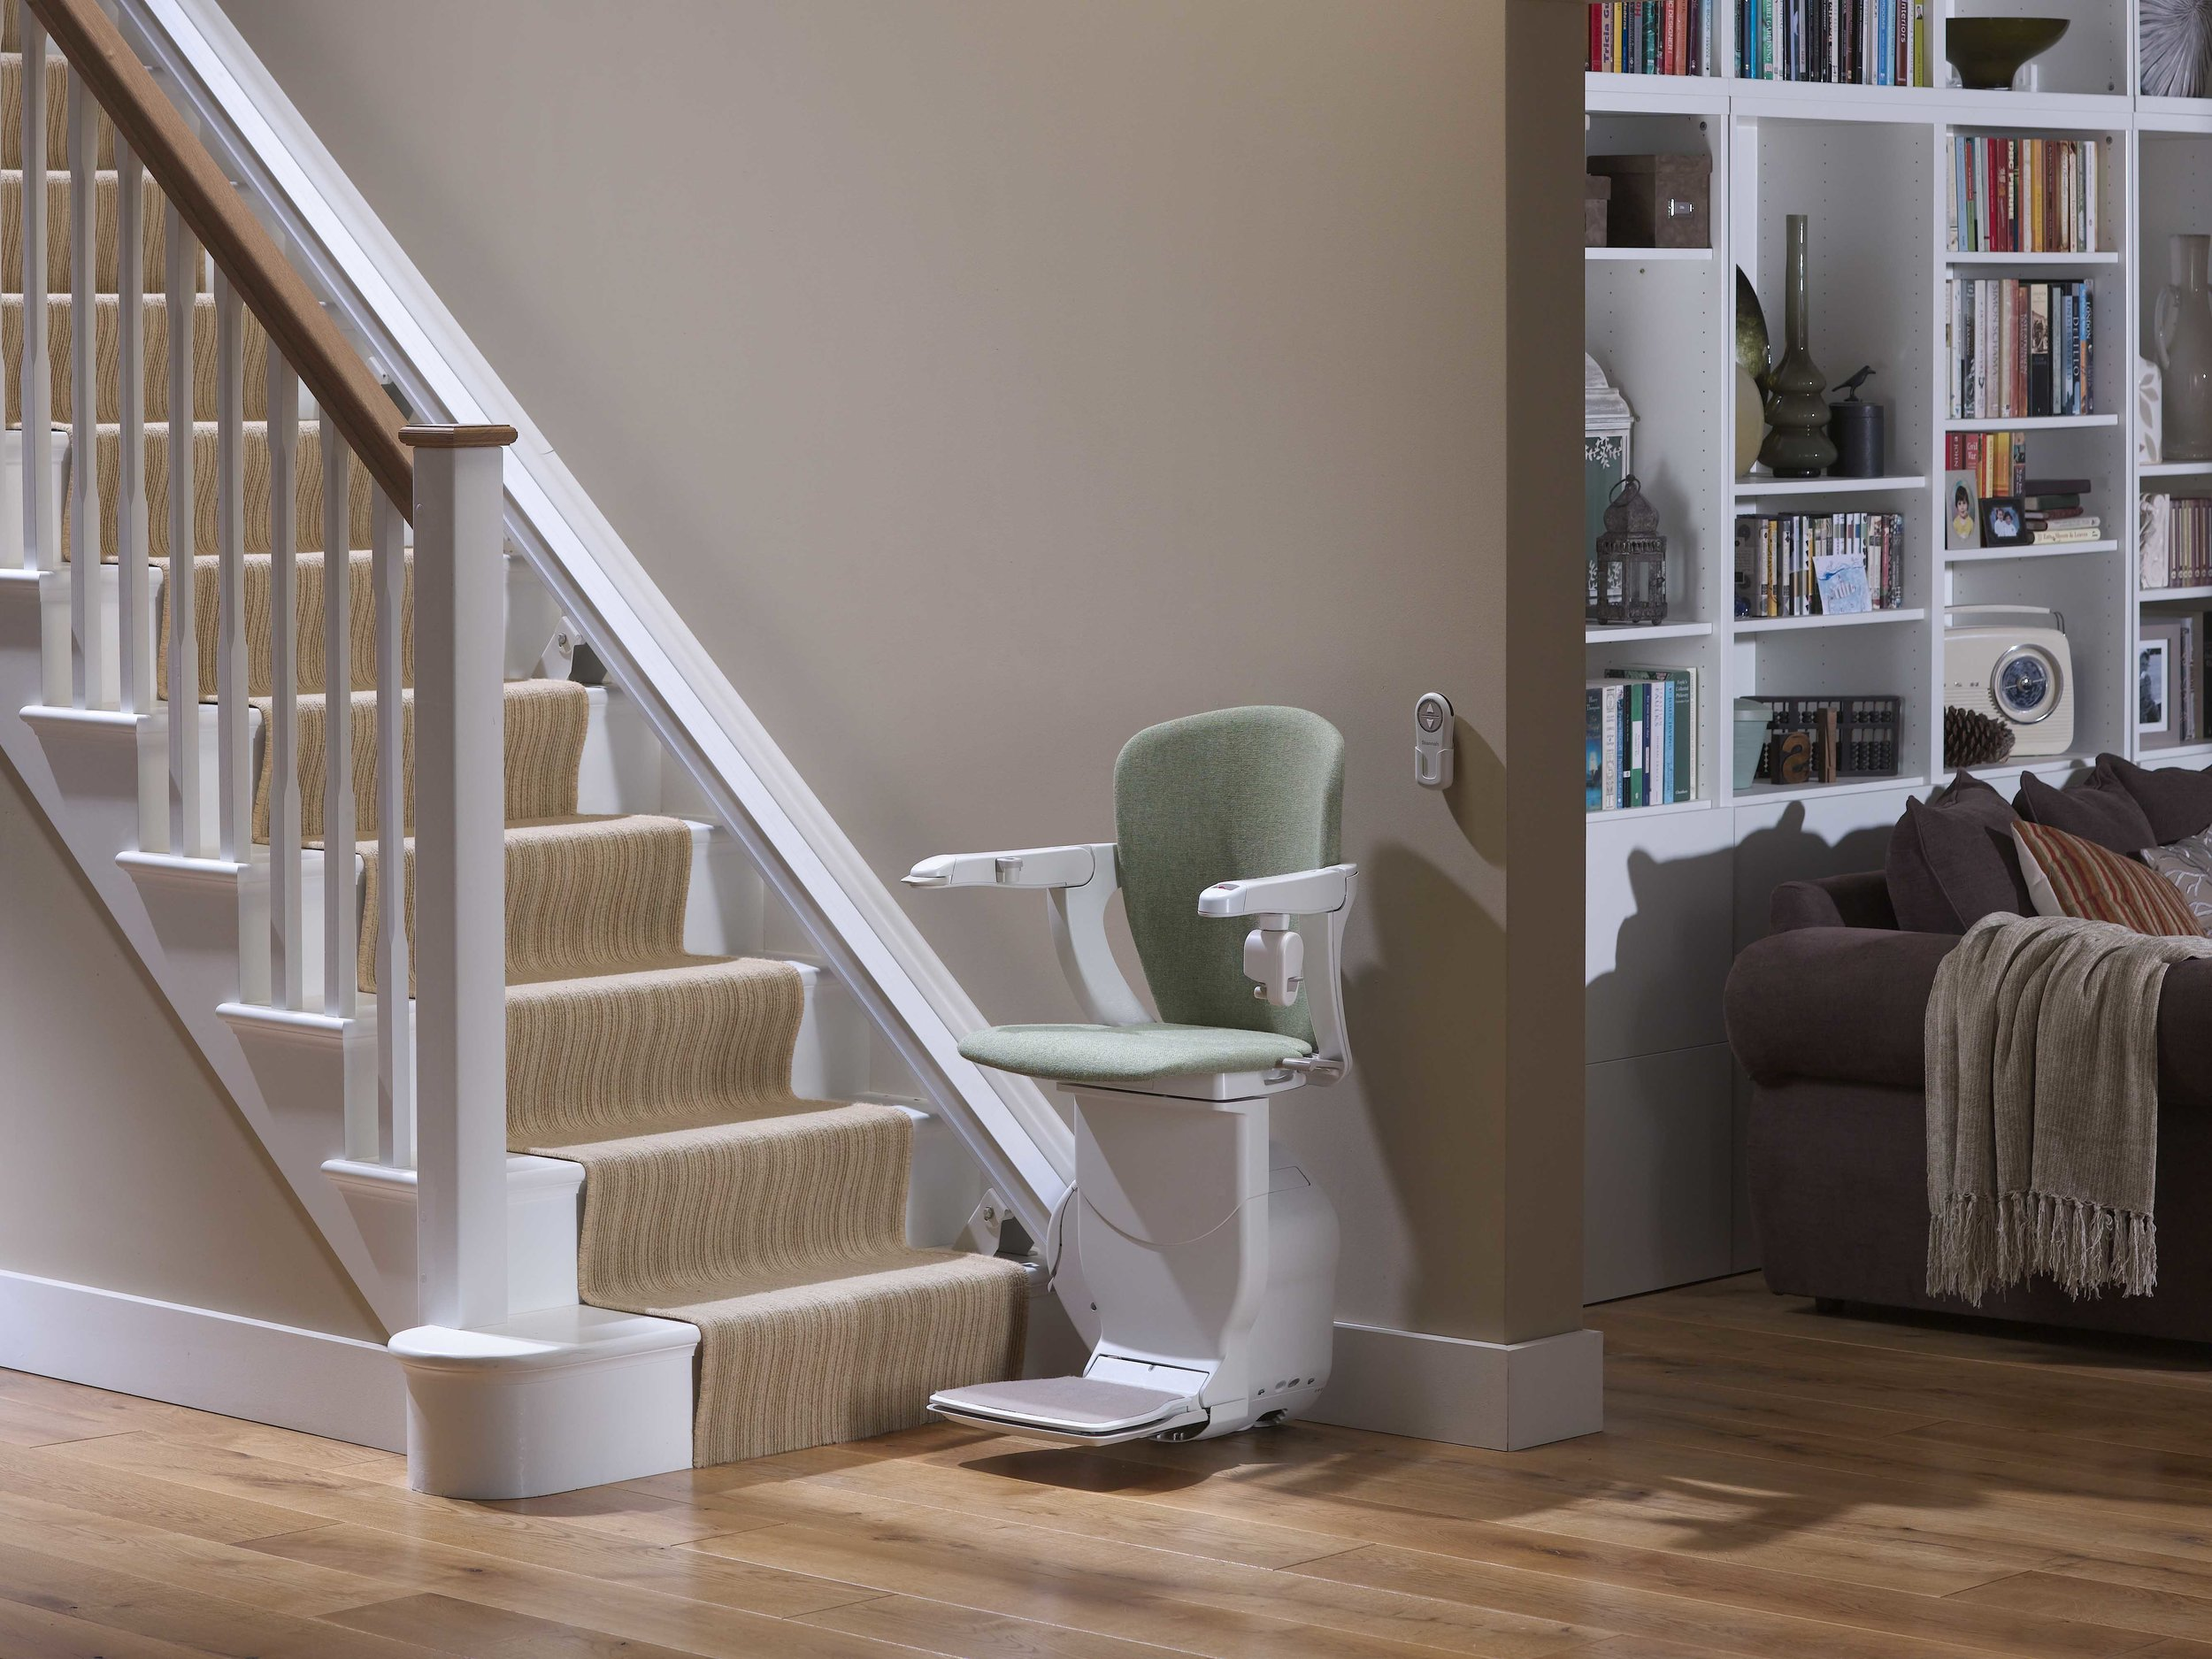 stannah-600-starla-stairlift-unfolded-downstairs.jpg